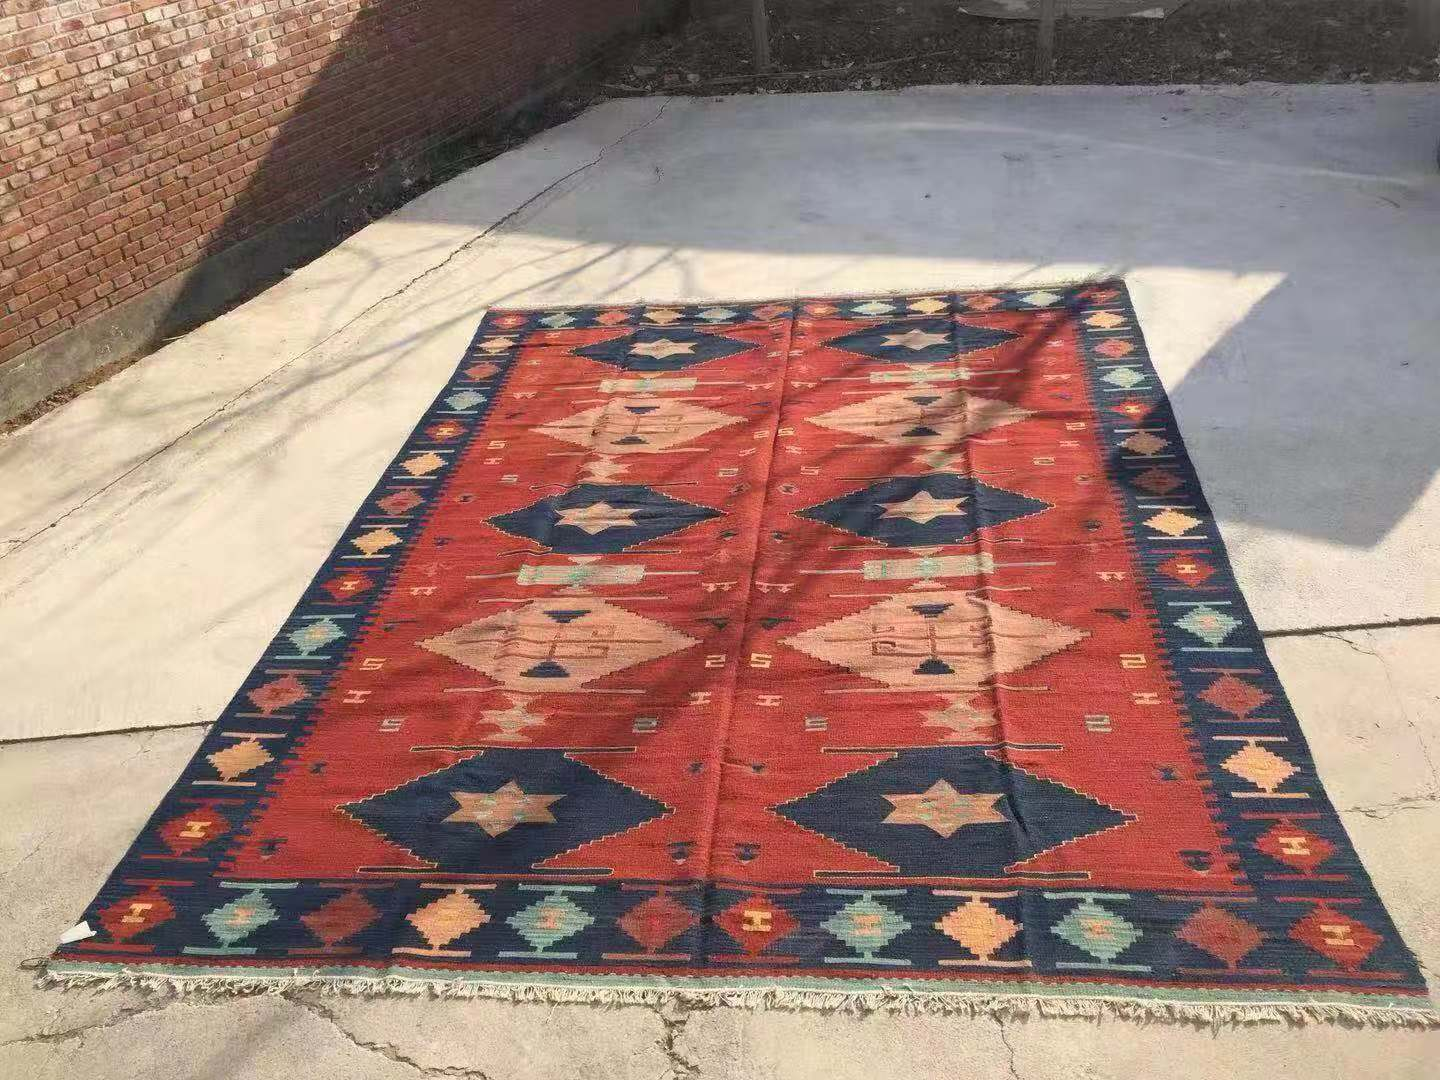 Tapis Style Kilim Kilim 100 Wool Handmade Carpet Geometric Indian Rug Plaid Striped